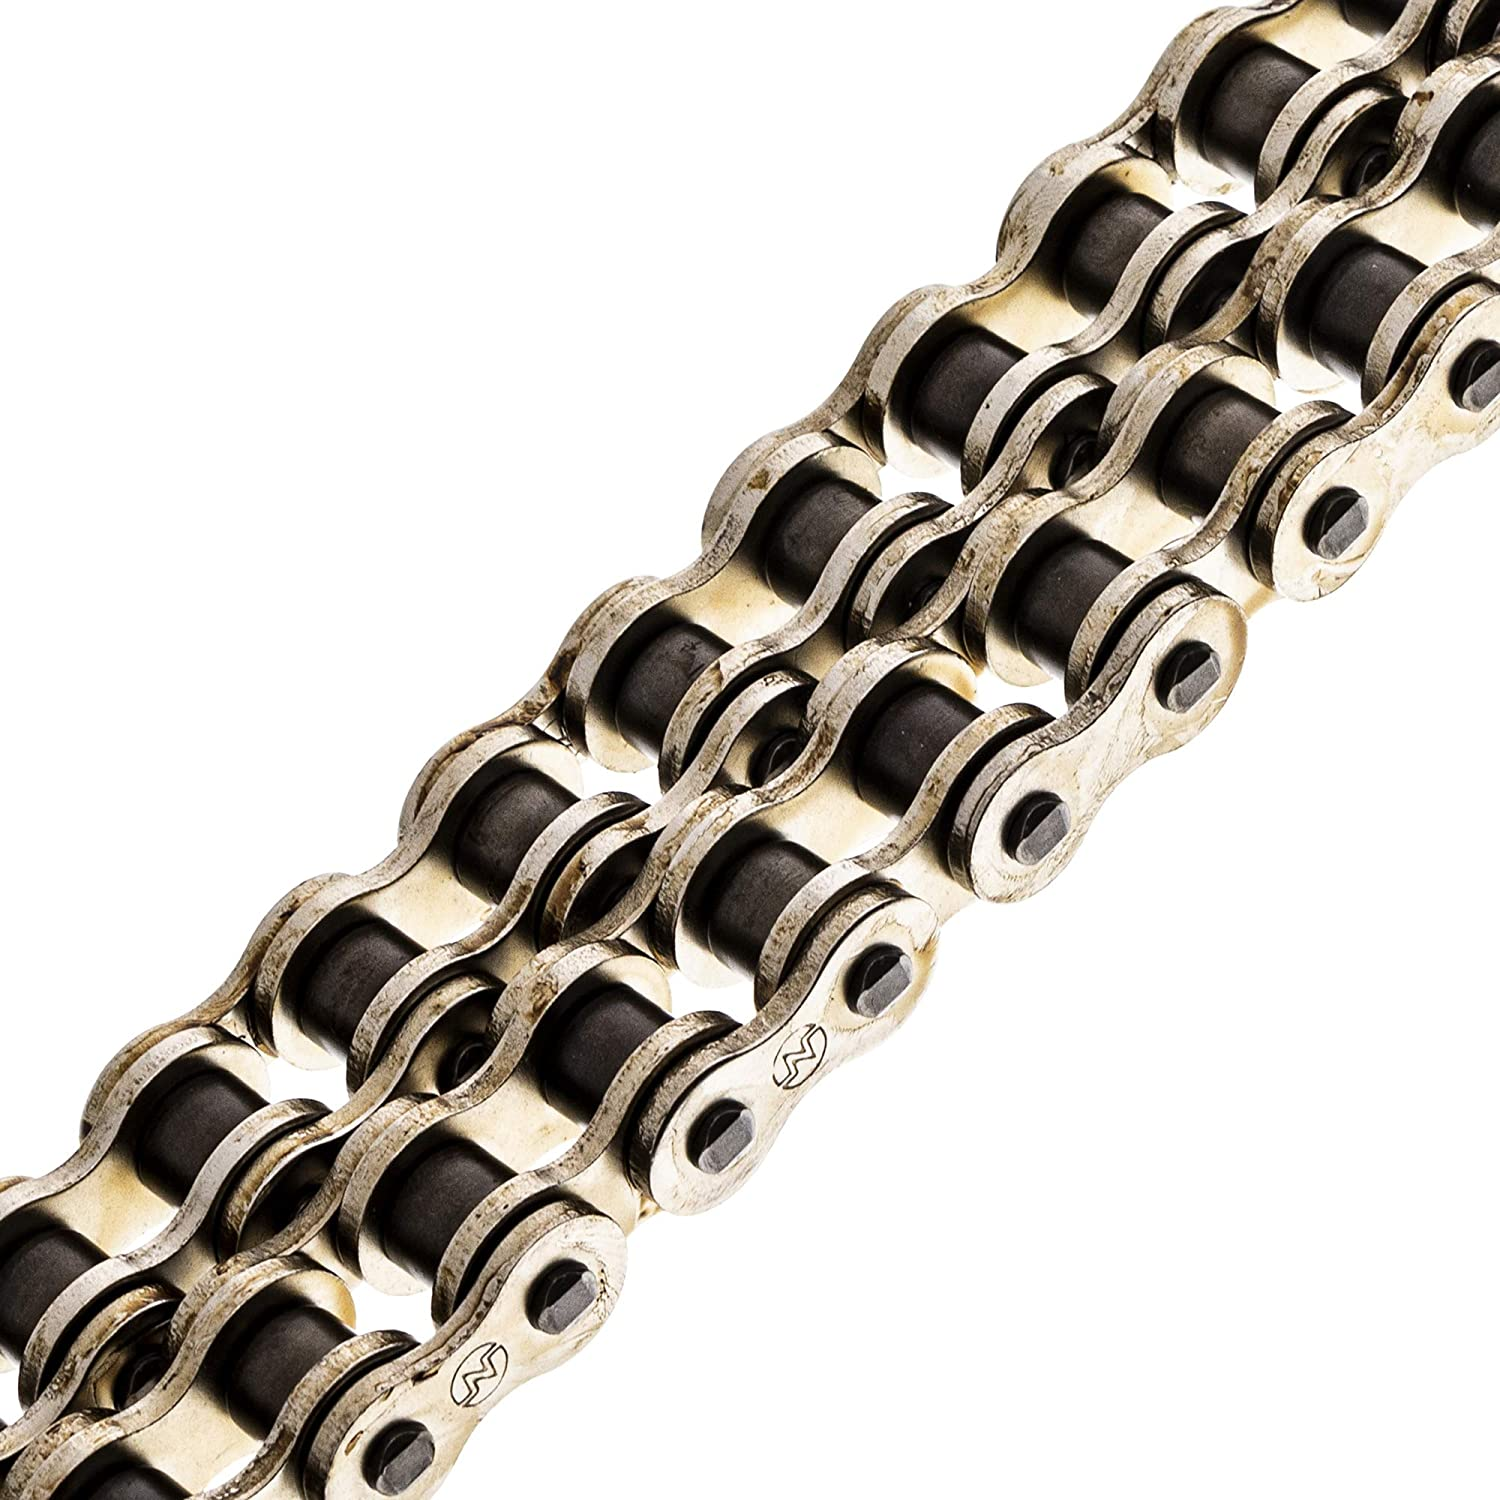 NICHE 525 Drive Chain 128 Links Standard Non O-Ring with Connecting Master Link